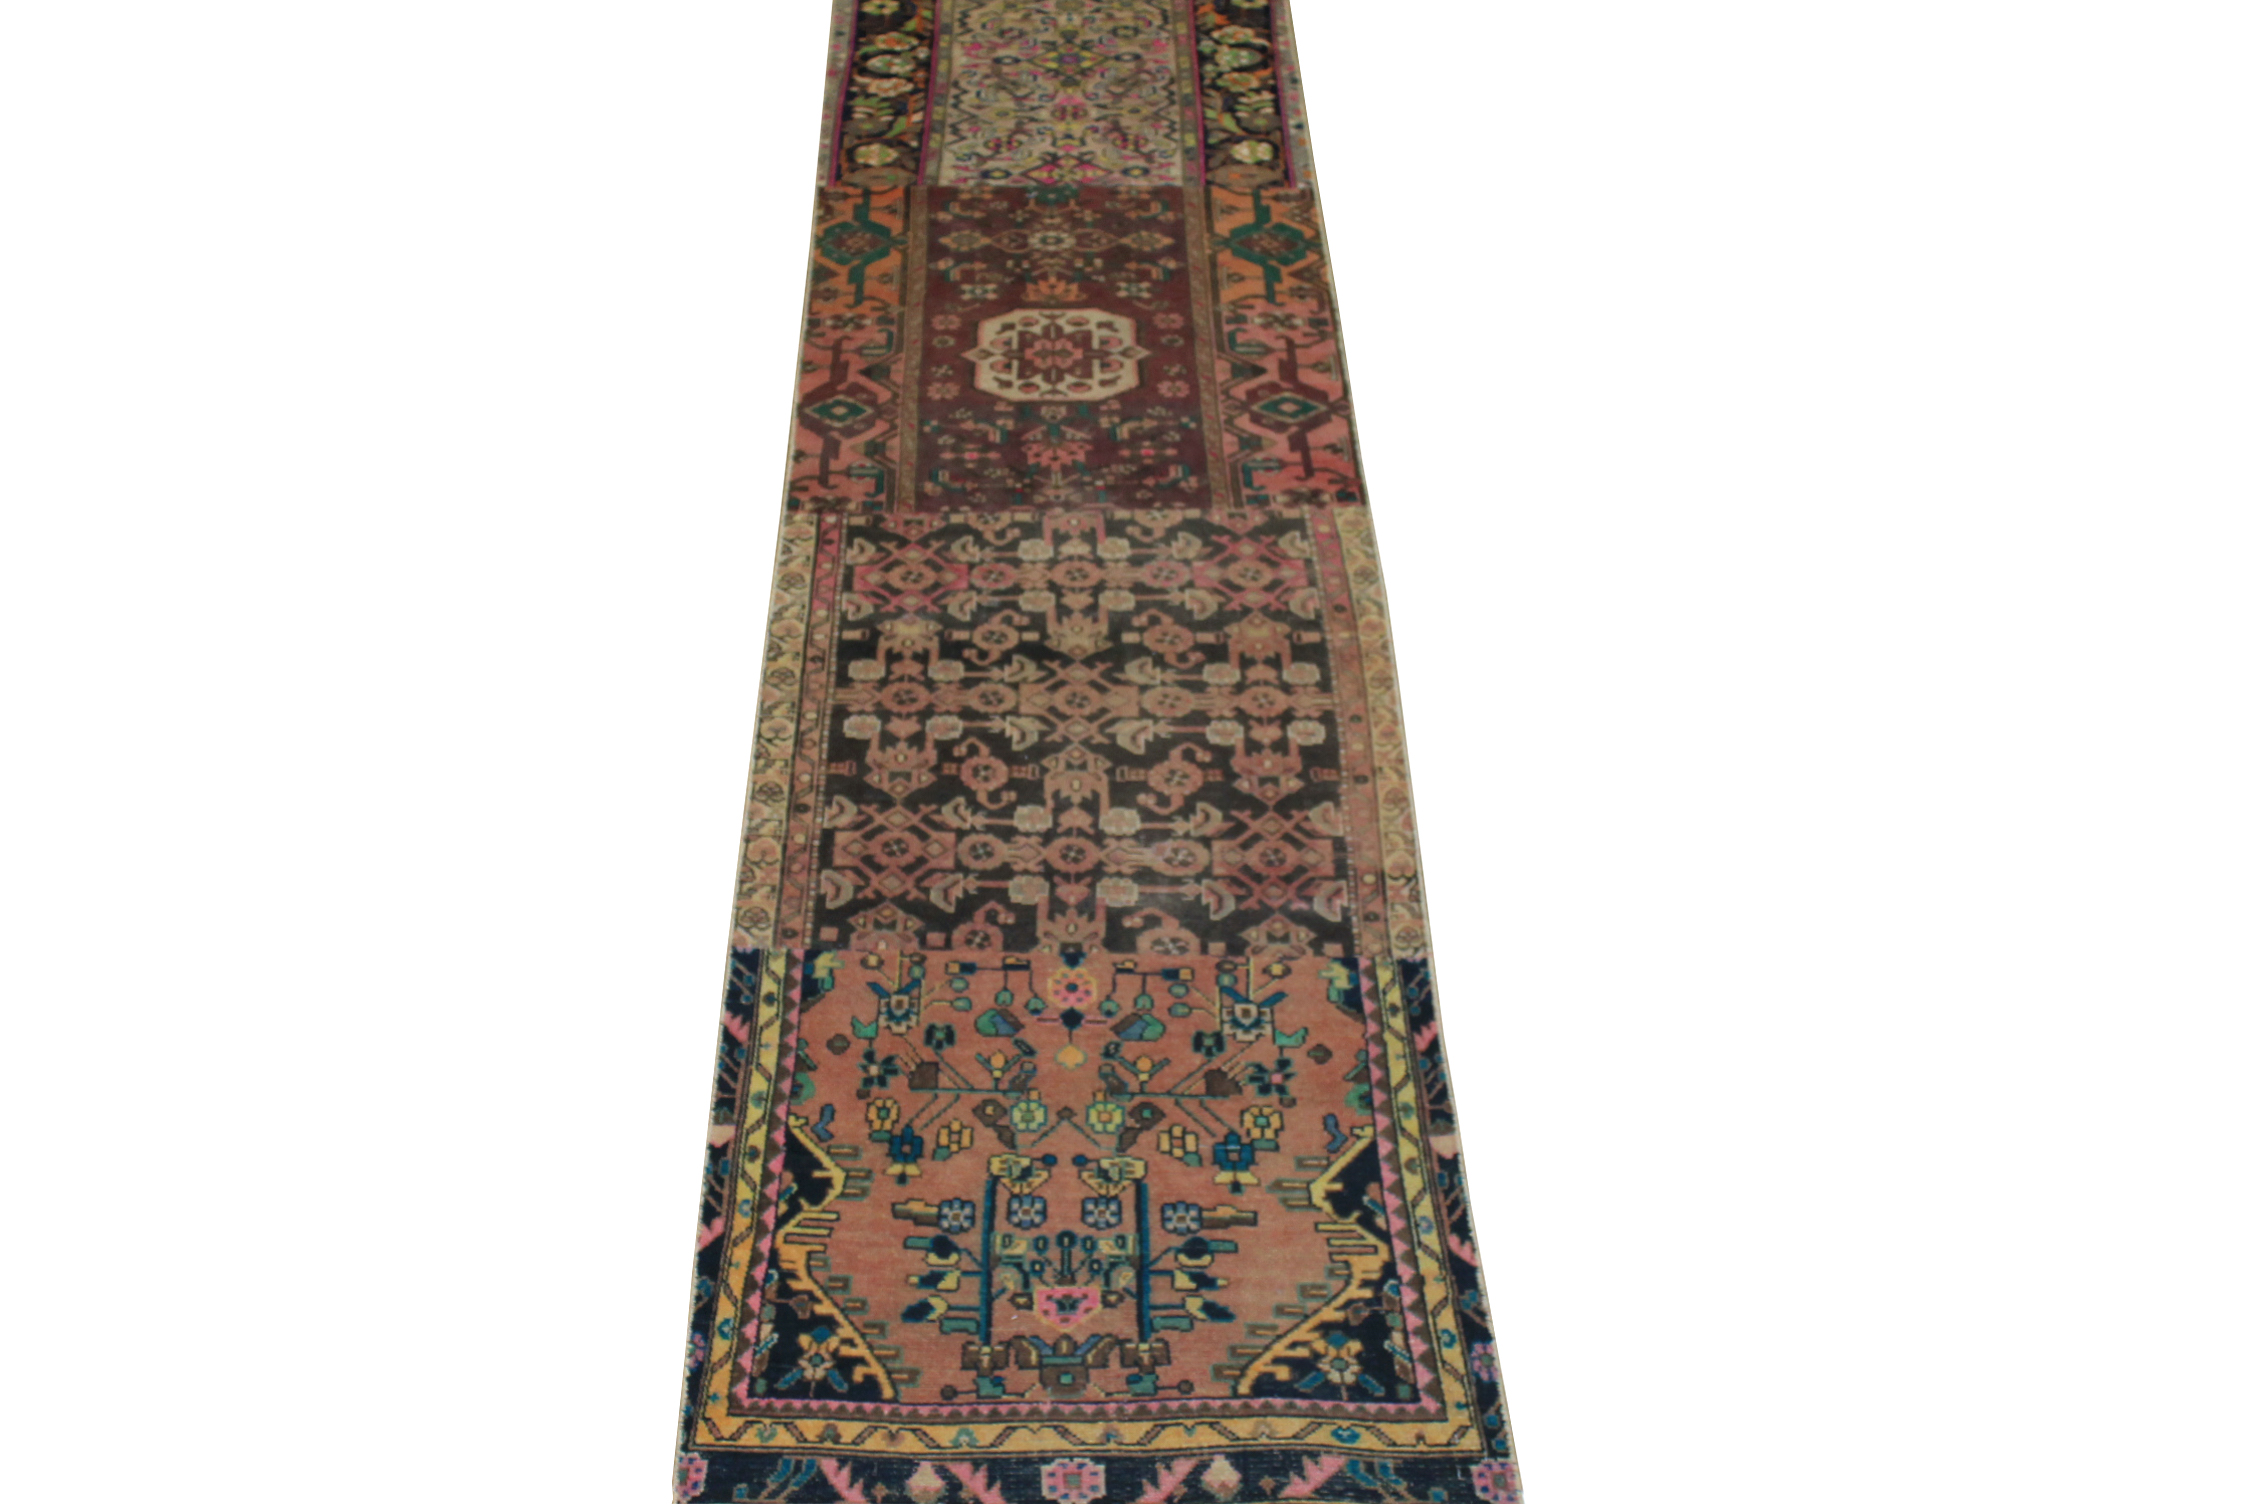 12 ft. Runner Vintage Hand Knotted Wool Area Rug - MR024506